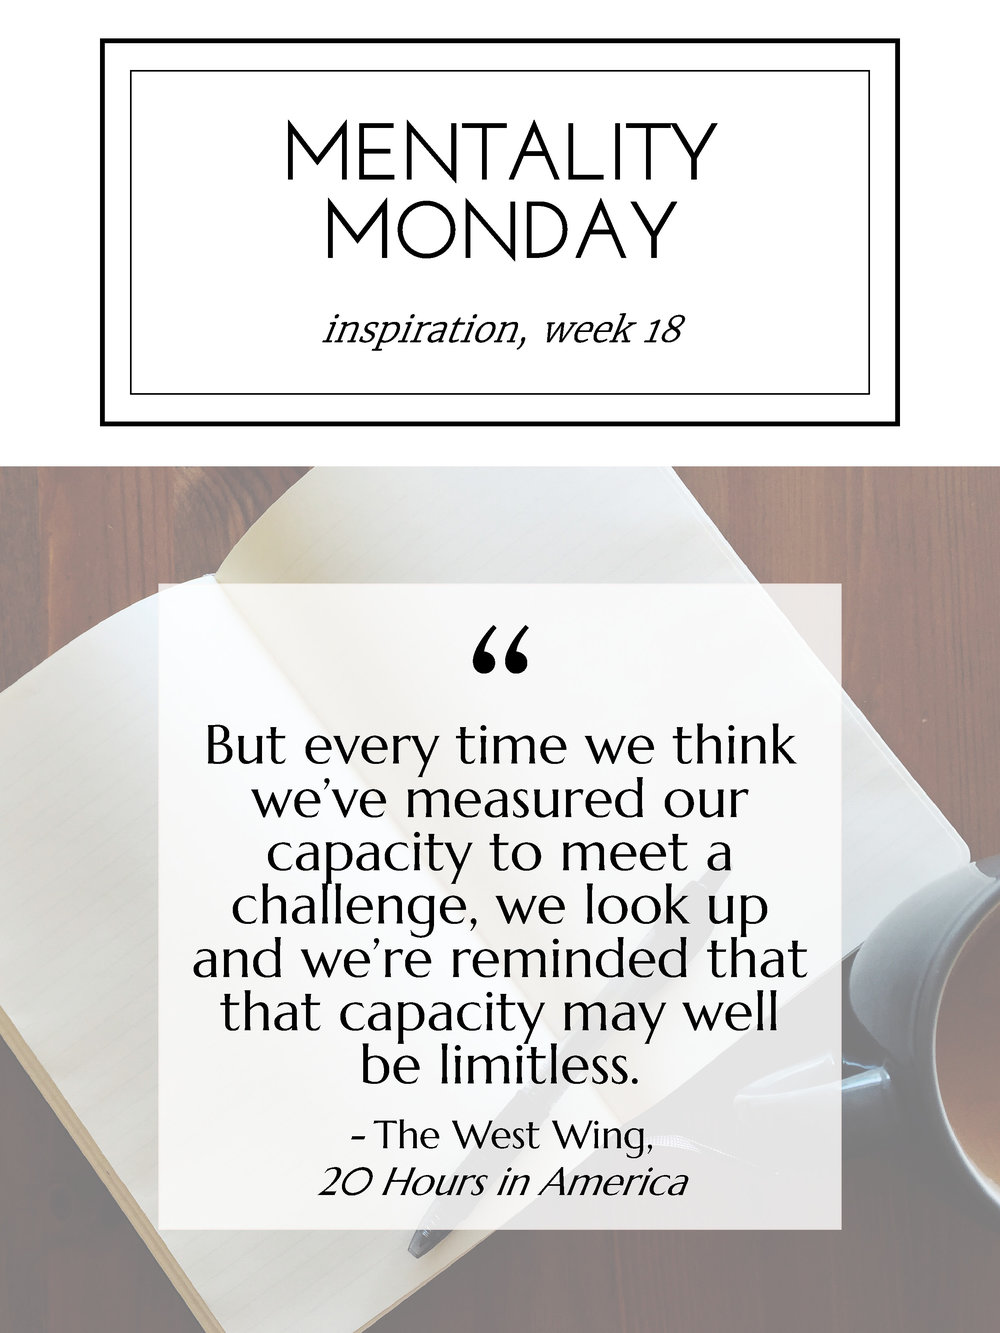 """Mentality Monday 18: """"But every time we think we've measured our capacity to meet a challenge, we look up and we're reminded that that capacity may well be limitless."""" - The West Wing, 20 Hours in America"""